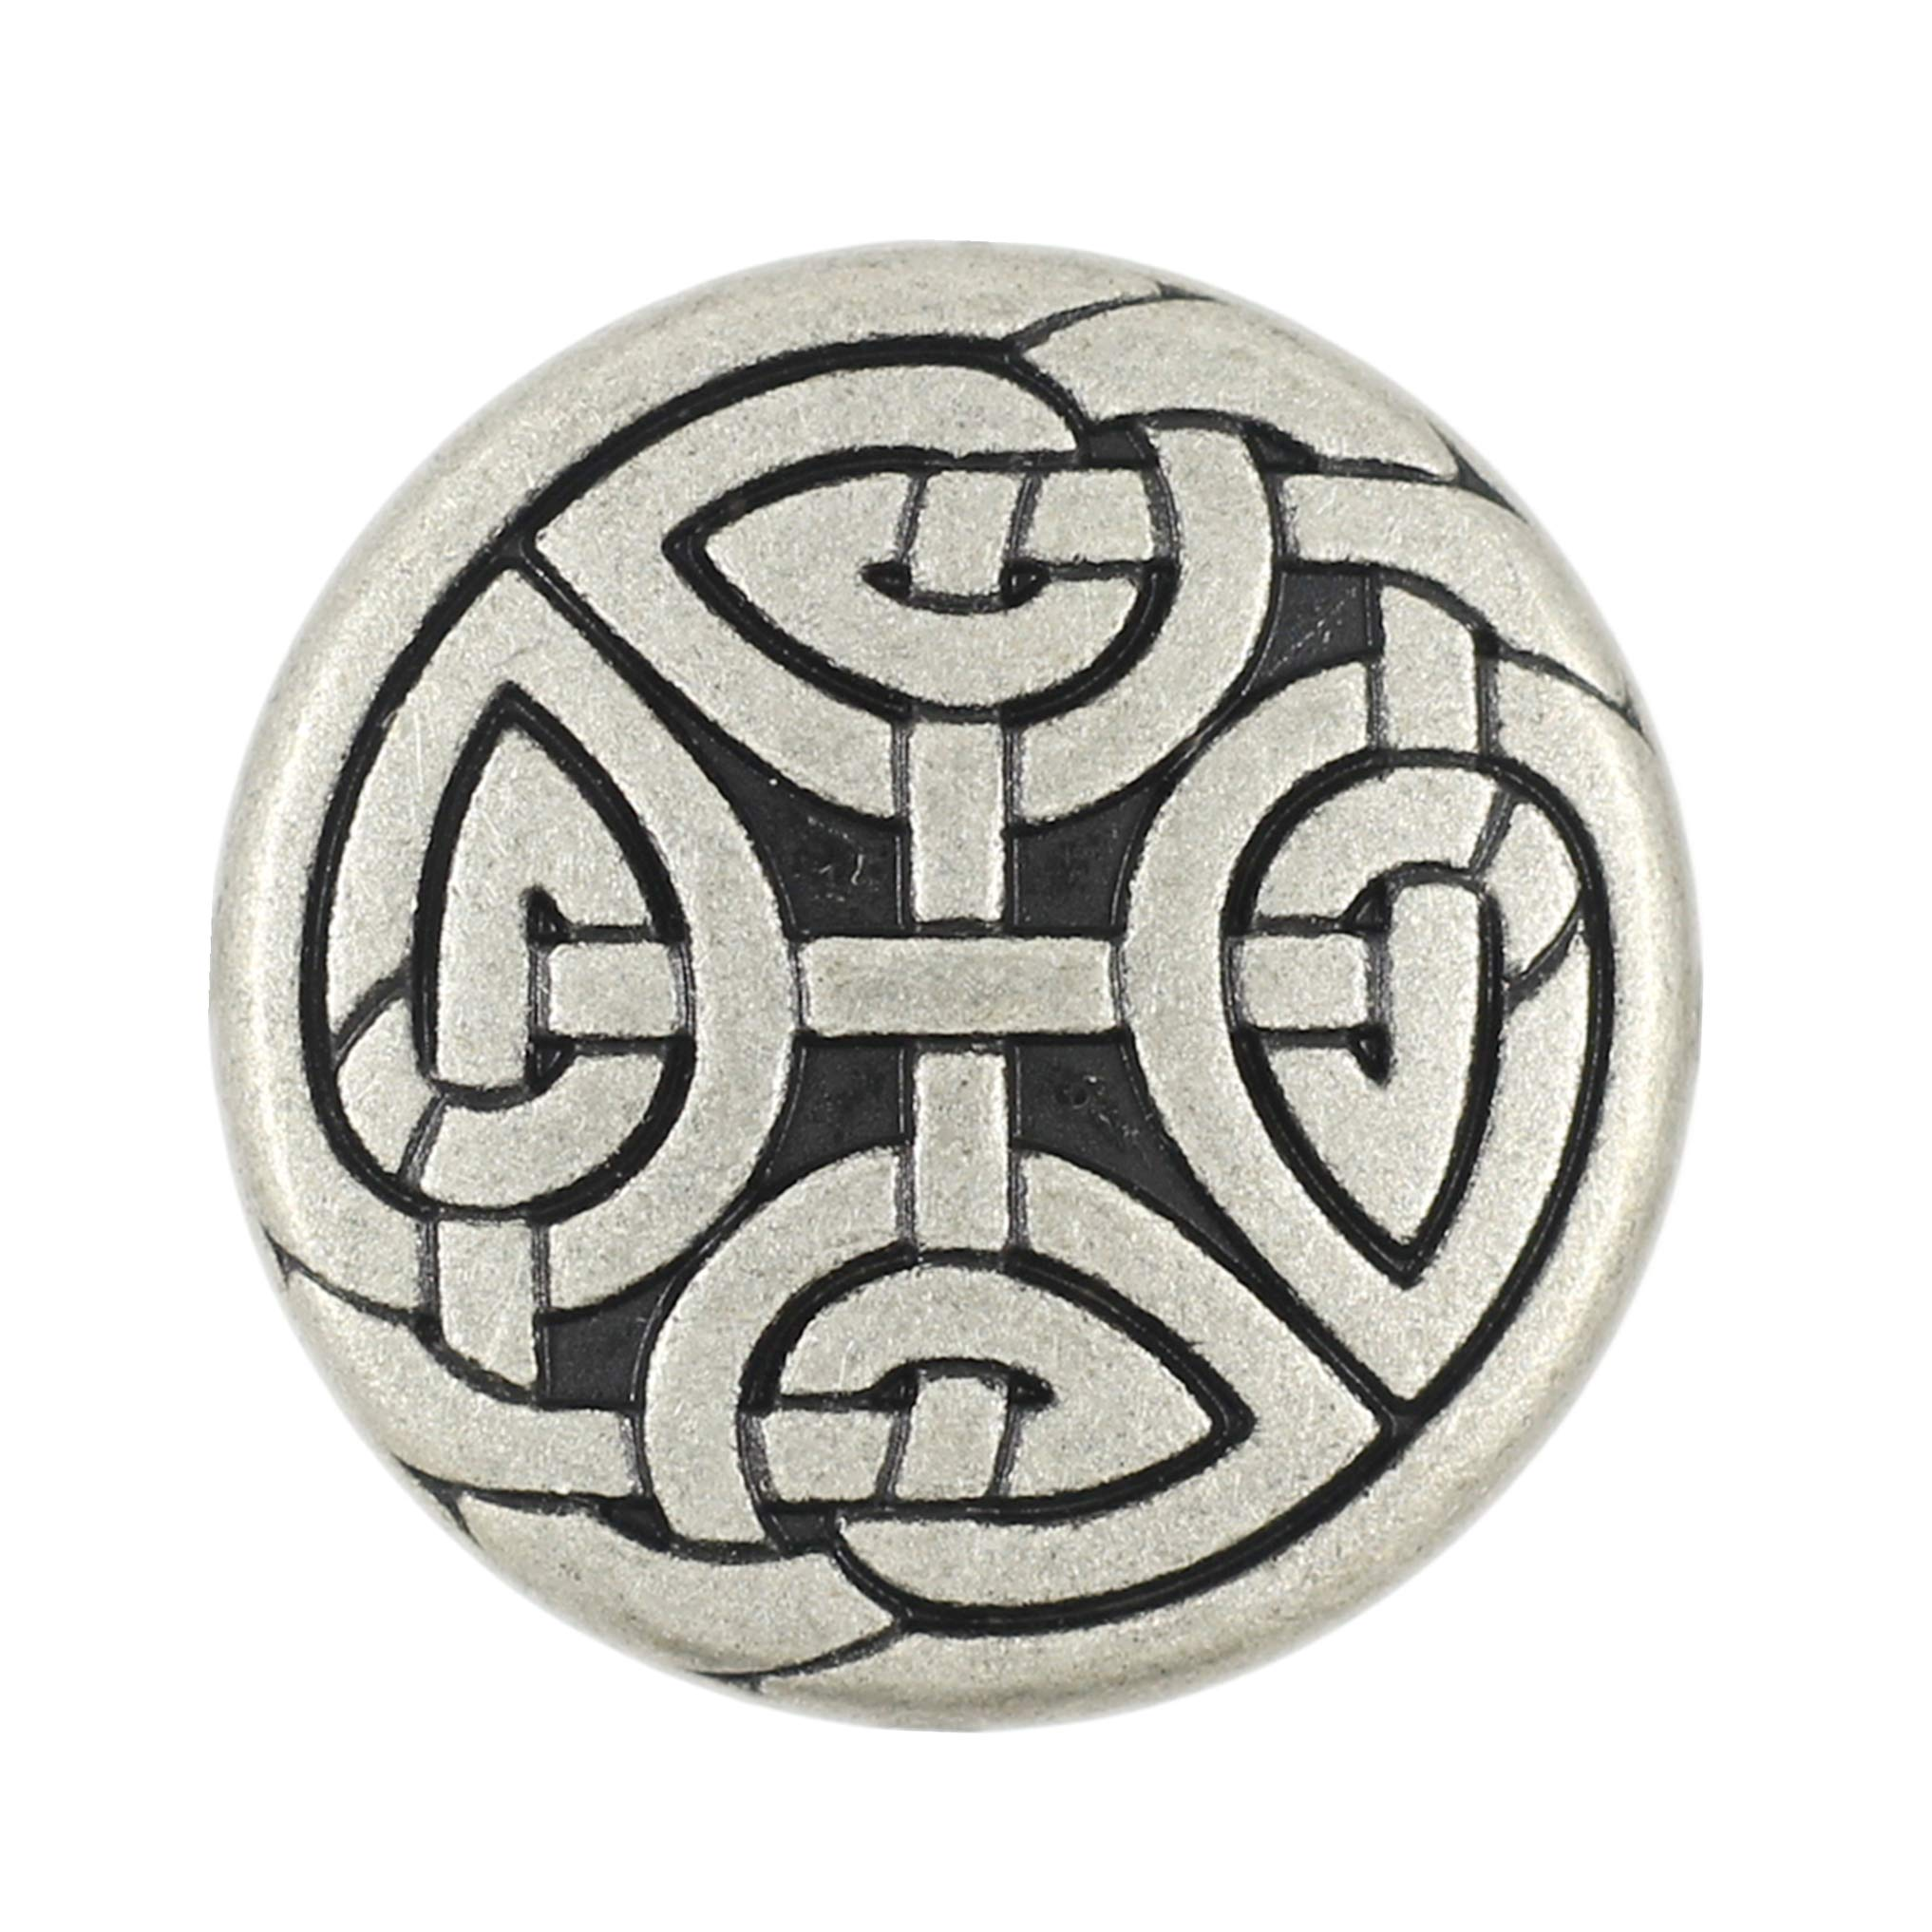 Bezelry 10 Pieces Celtic Eternal Knot Metal Shank Buttons. 23mm (7/8 inch) (Antique Silver)